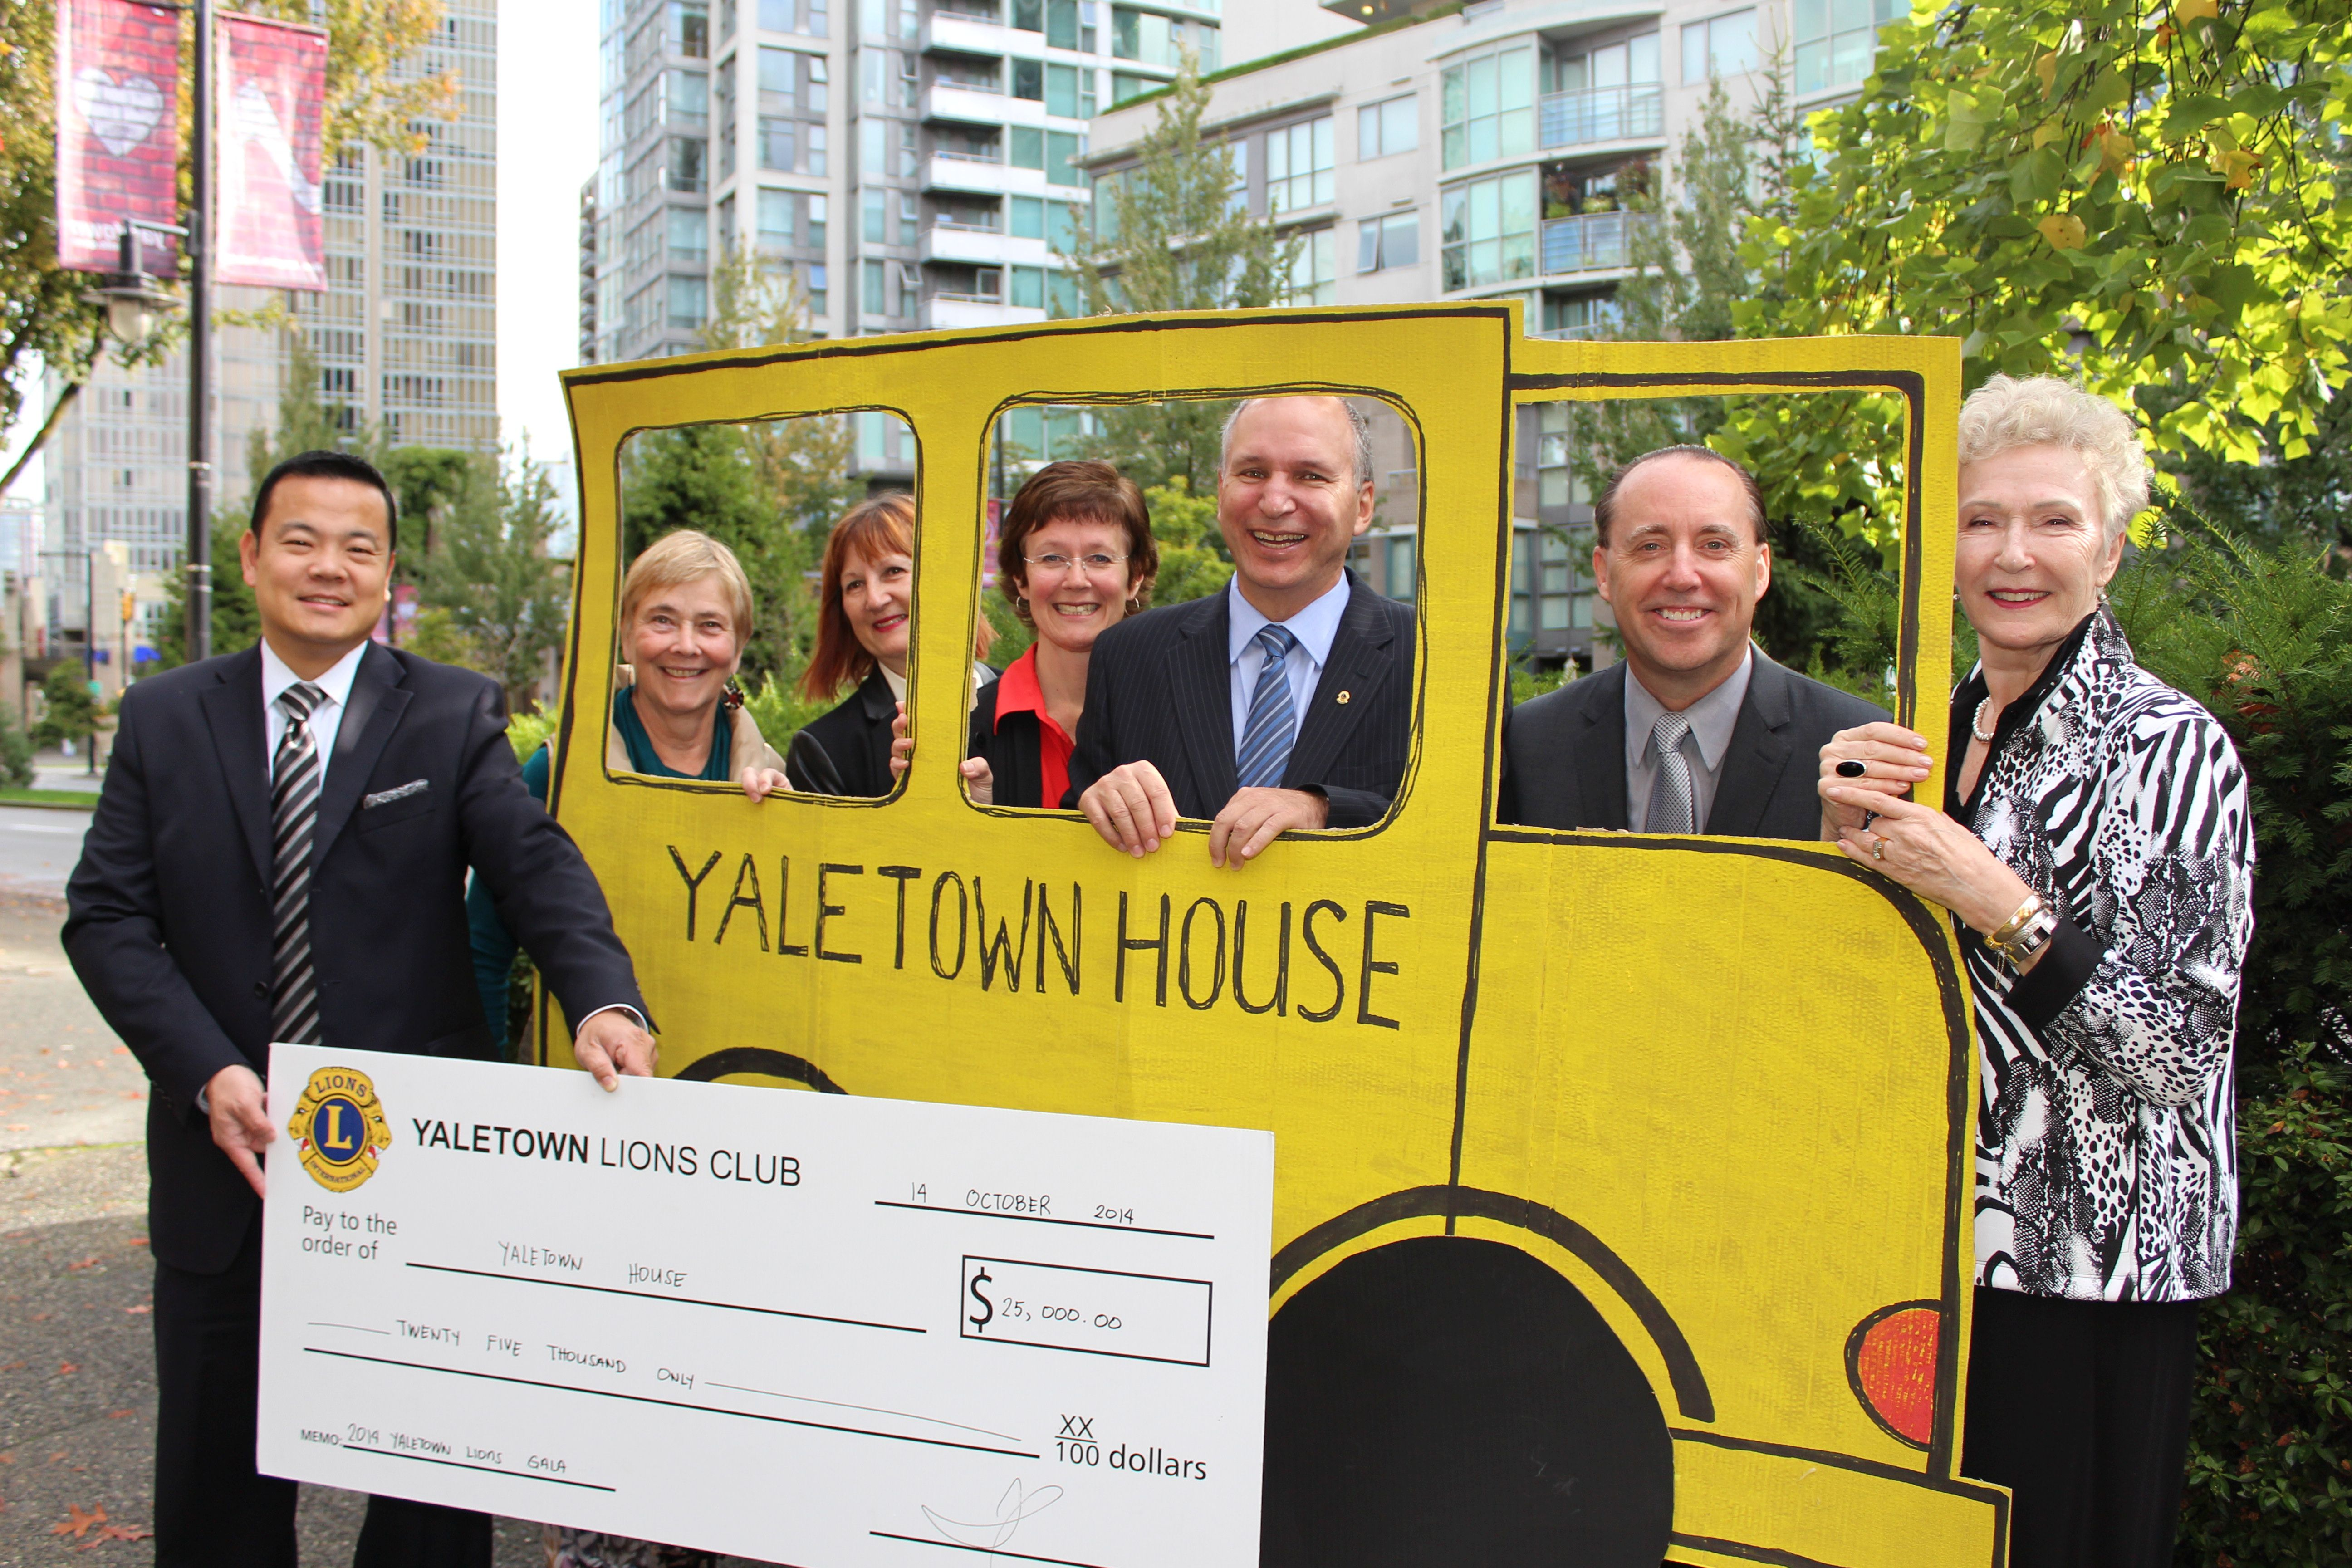 Another ROARING success for the Yaletown Lions Club